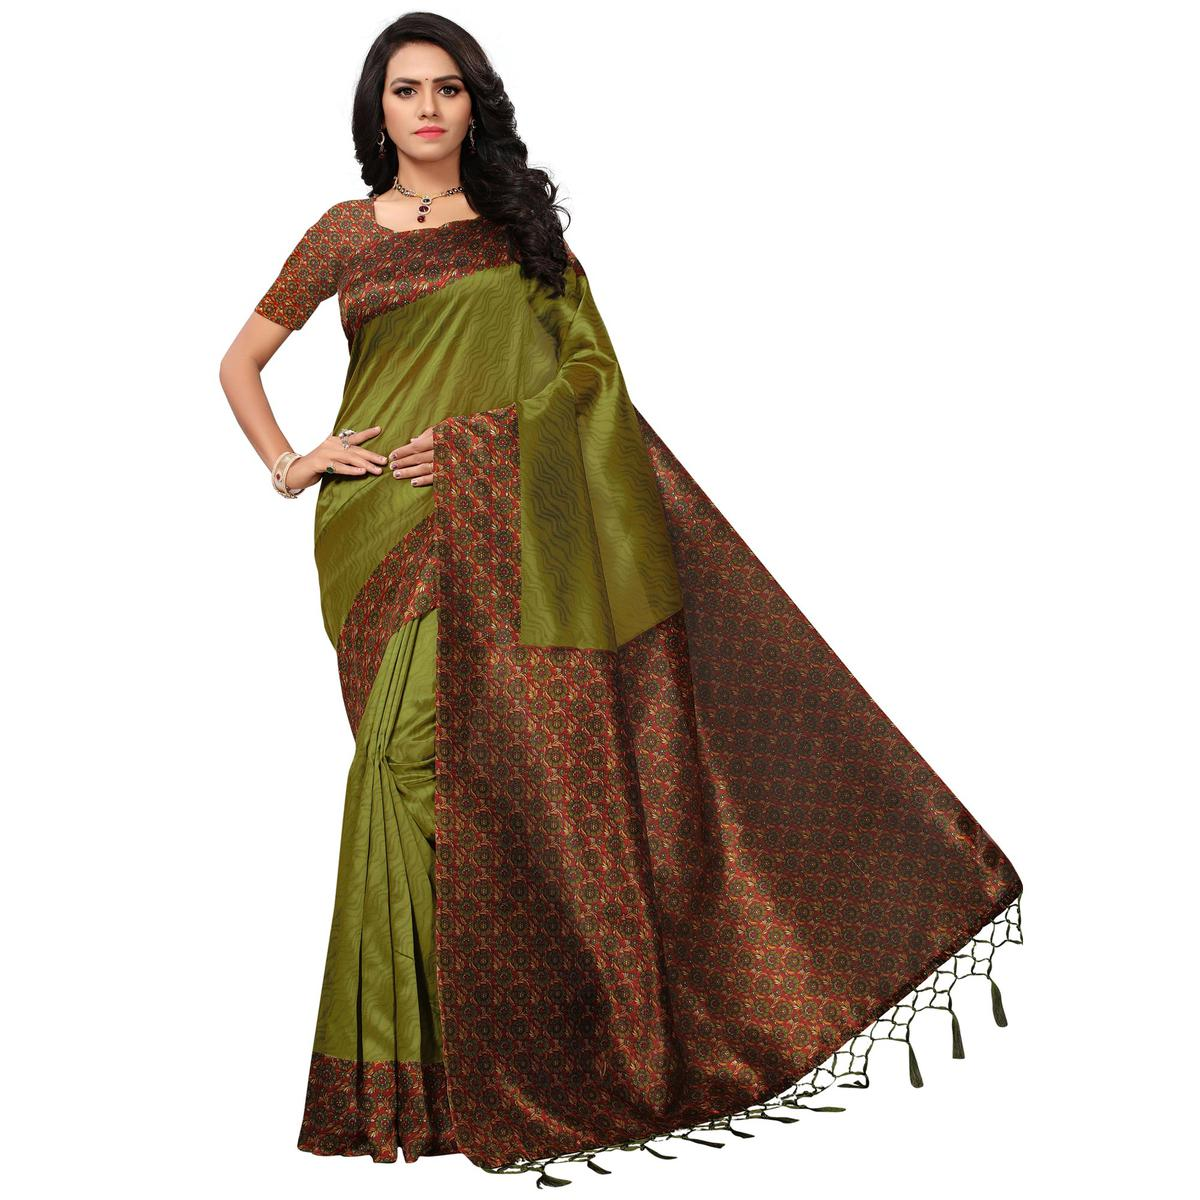 Refreshing Green Colored Casual Printed Mysore Art Silk Saree